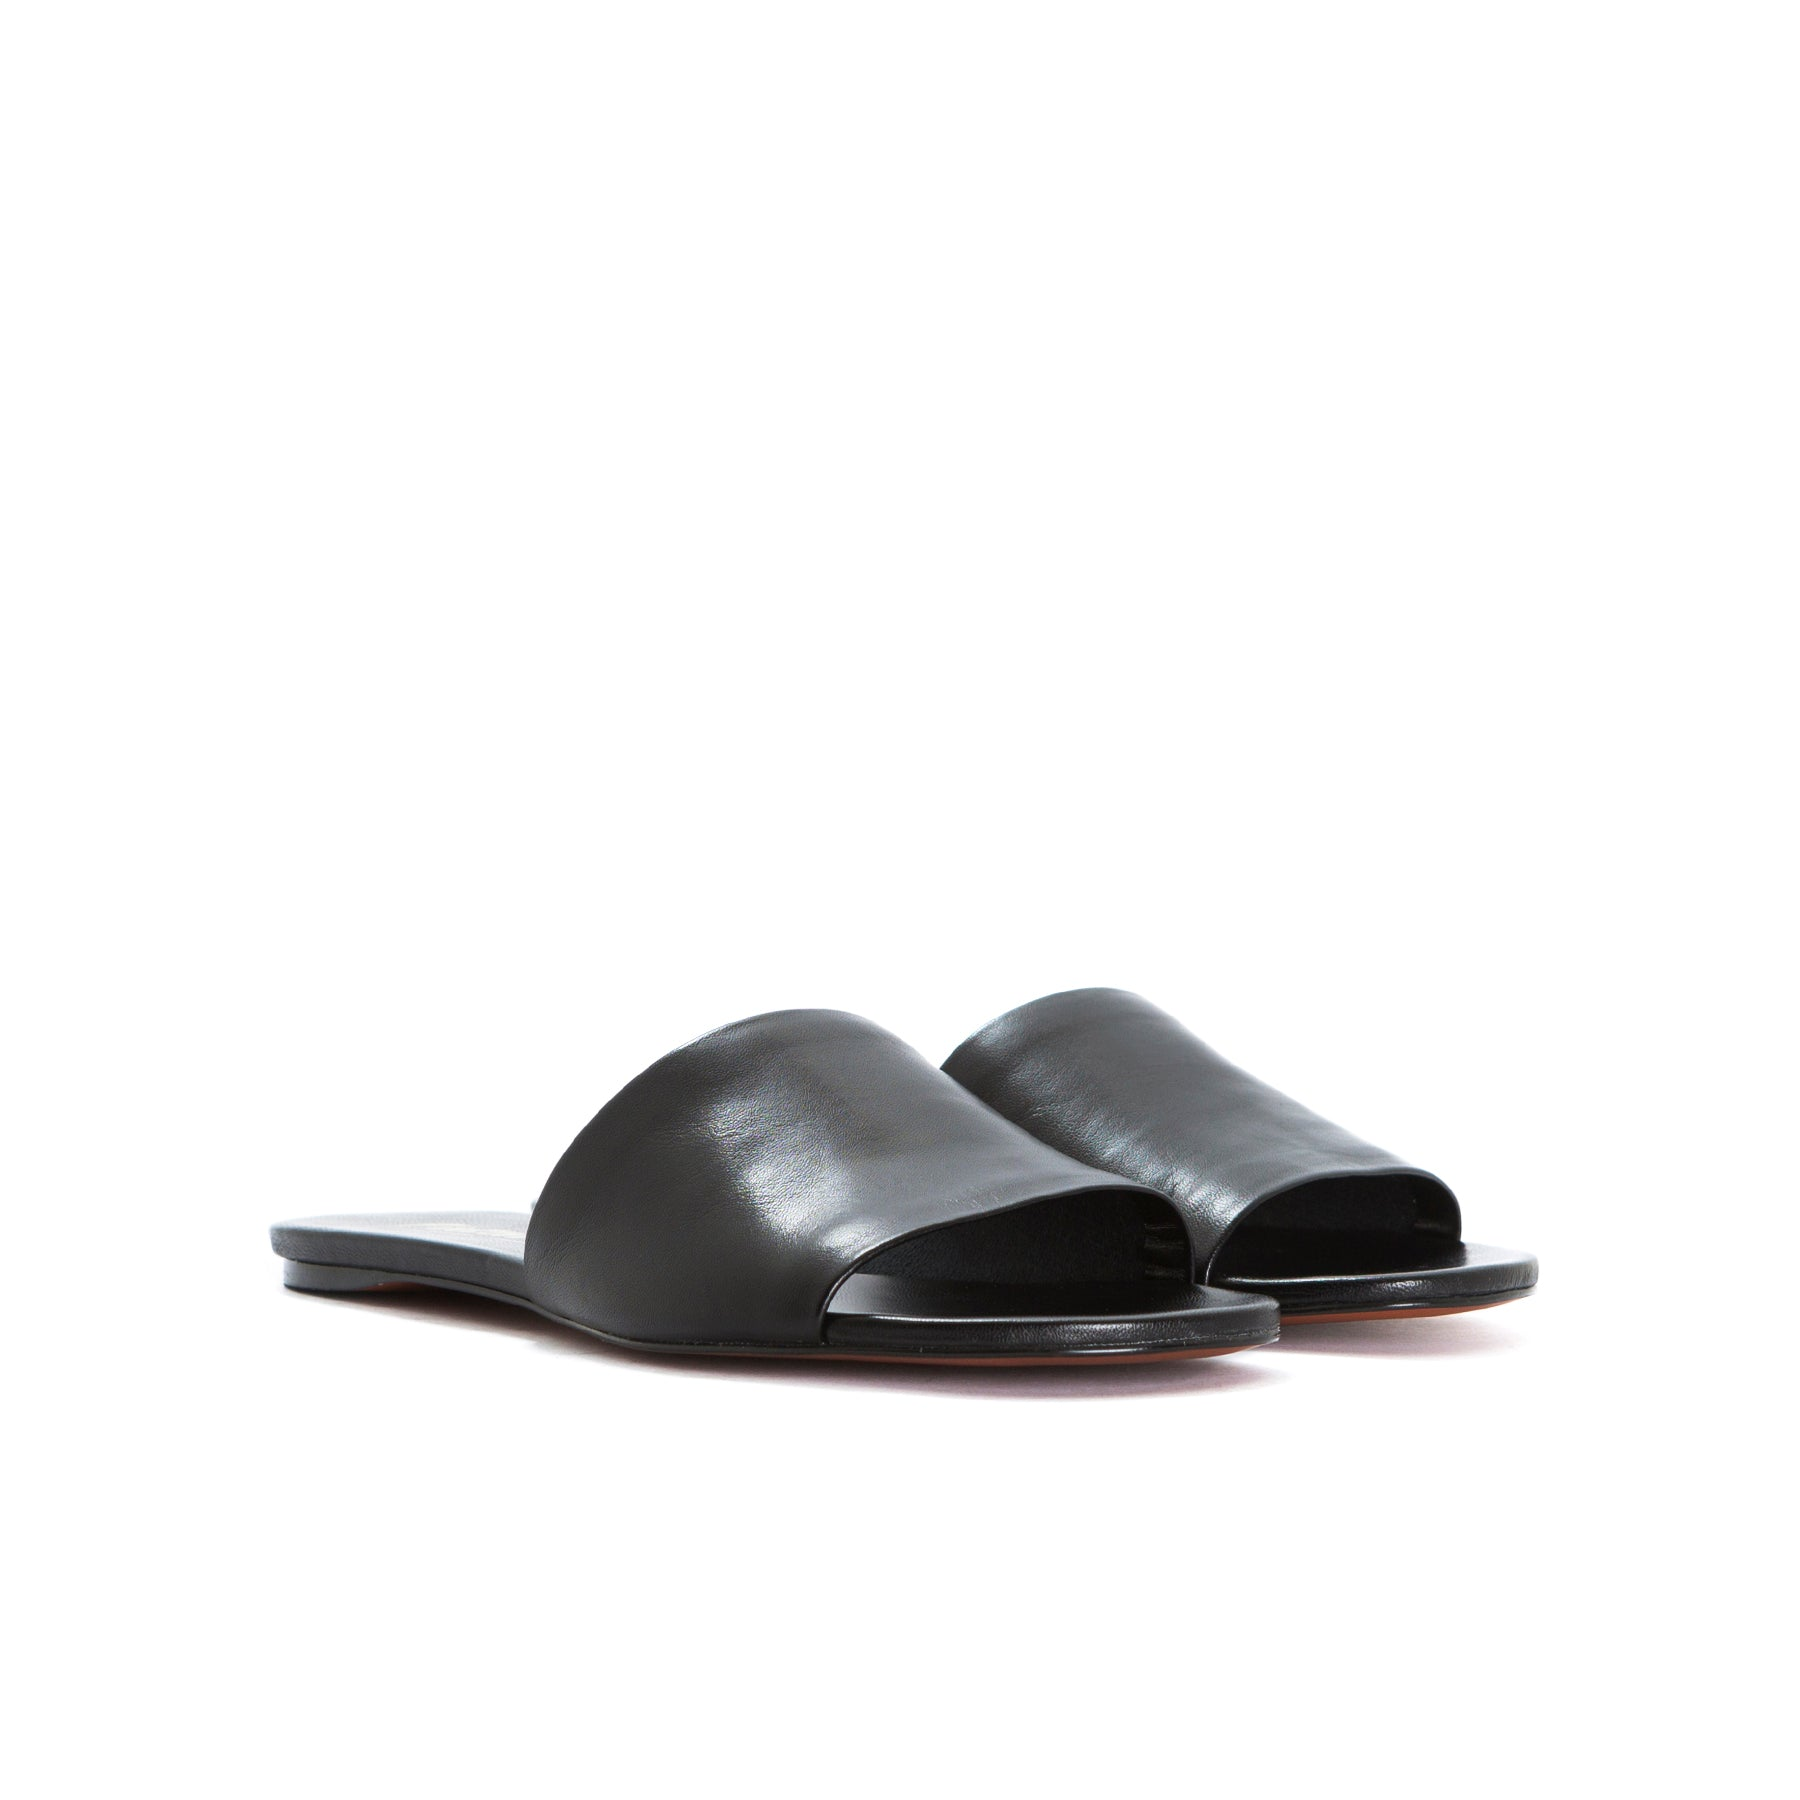 Varadero Black Leather Sandals